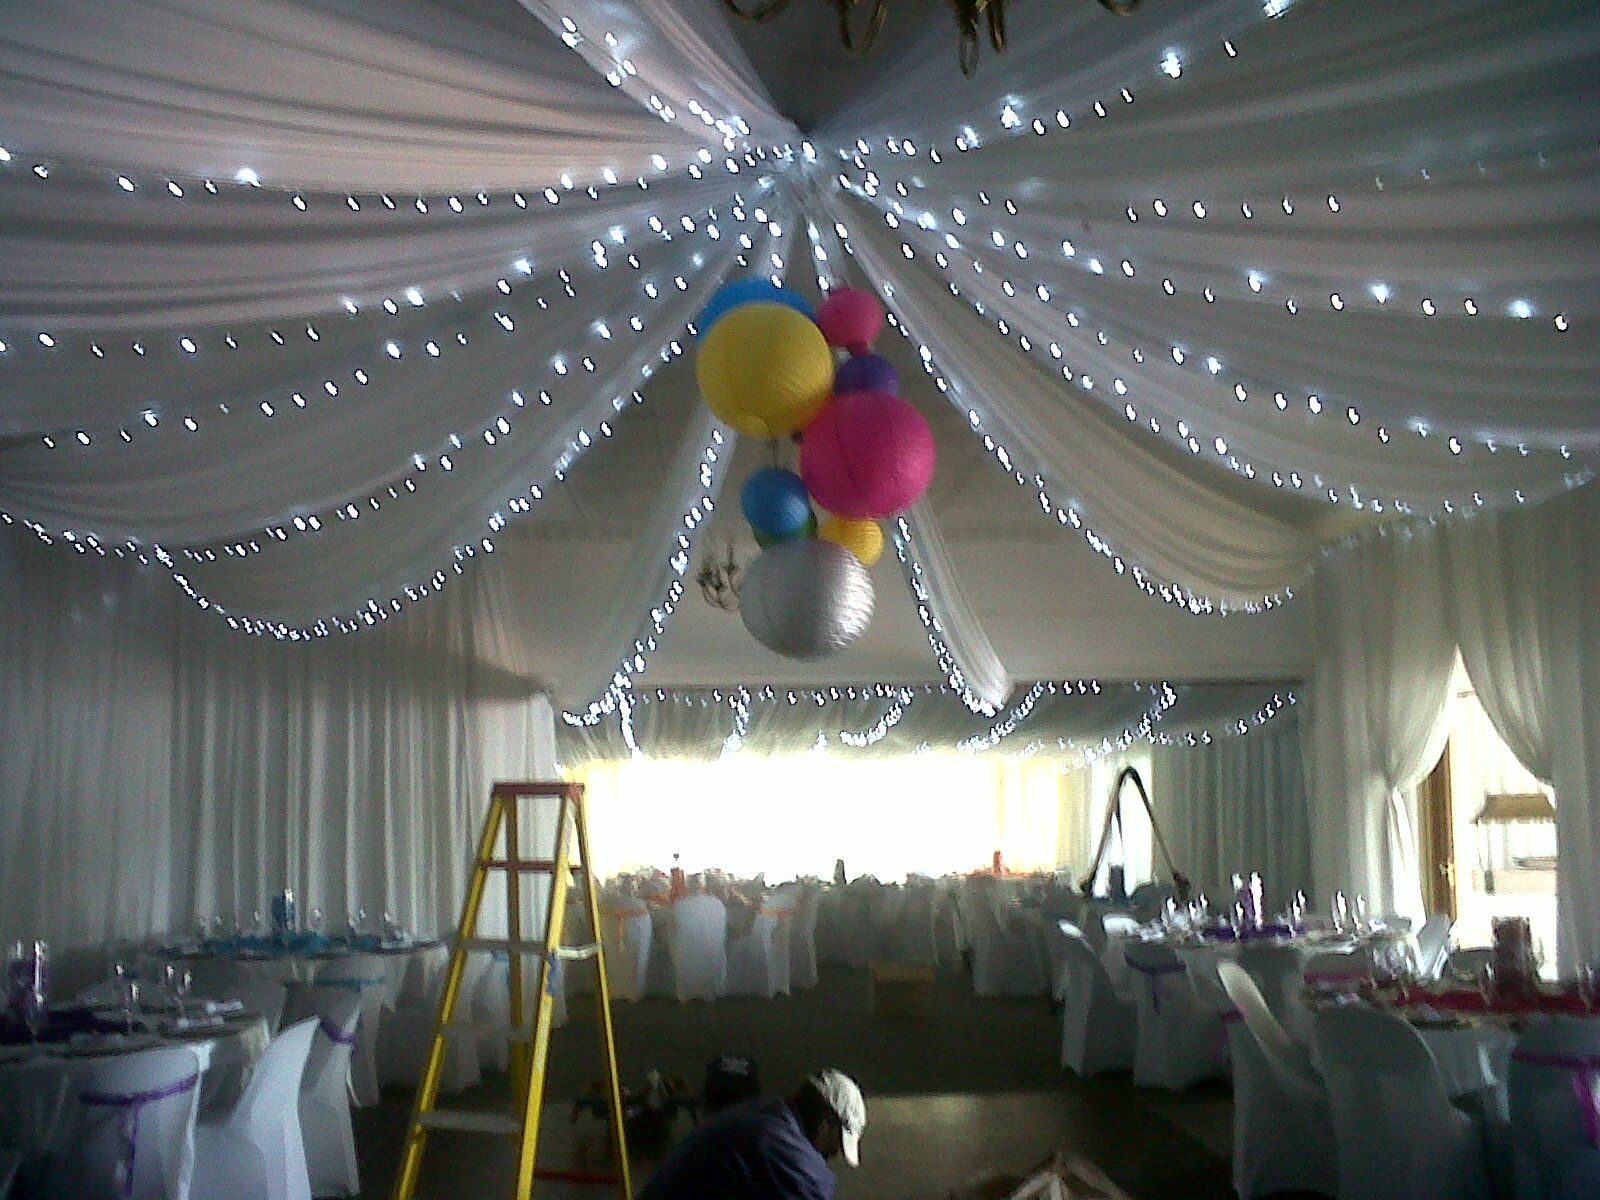 how fabric huron drapery lighting drapes ceiling events door port michigan drape room hang pipe backdrop ceilings for draping click to